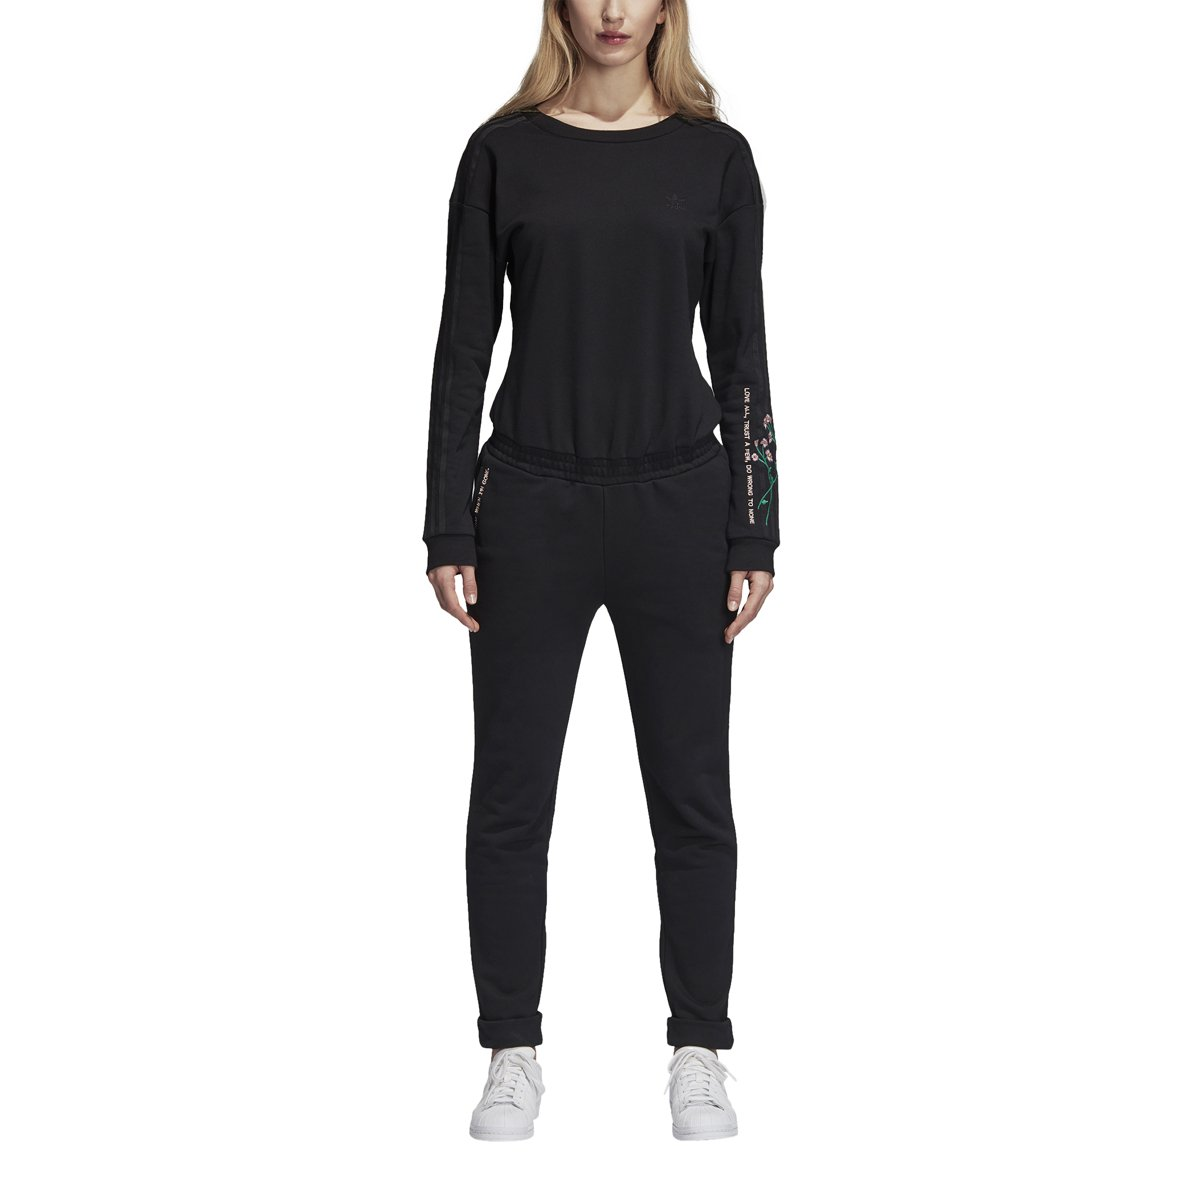 0ccc0590c511 Amazon.com  Adidas Love Revolution Jumpsuit  Clothing